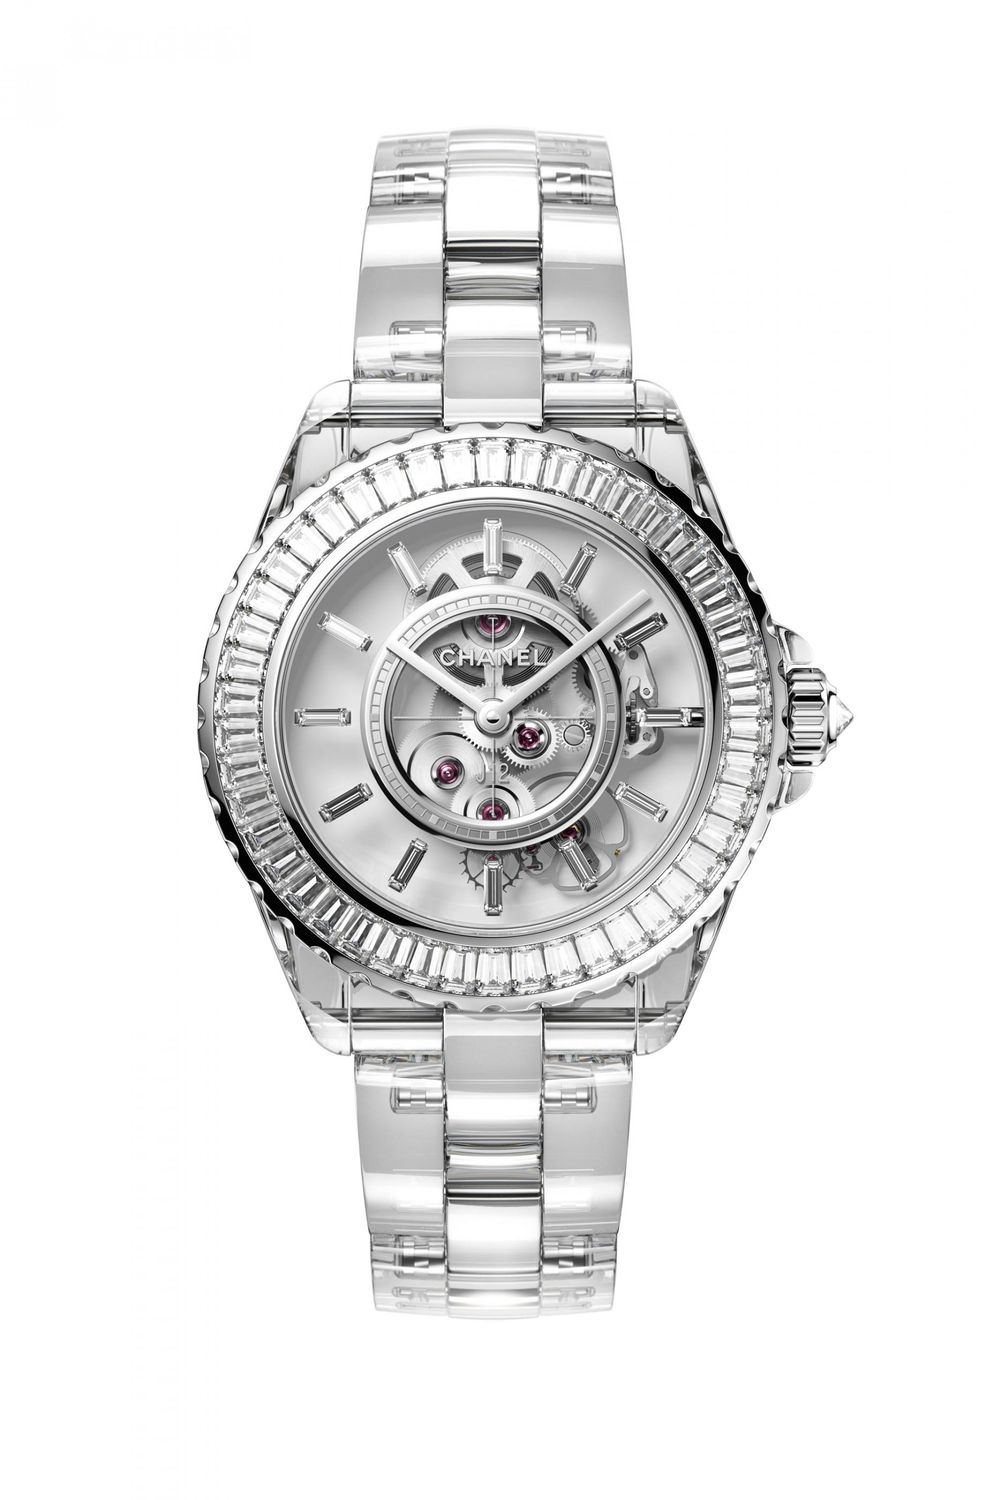 Sapphire On Sapphire, introducing the Chanel J12 X-Ray